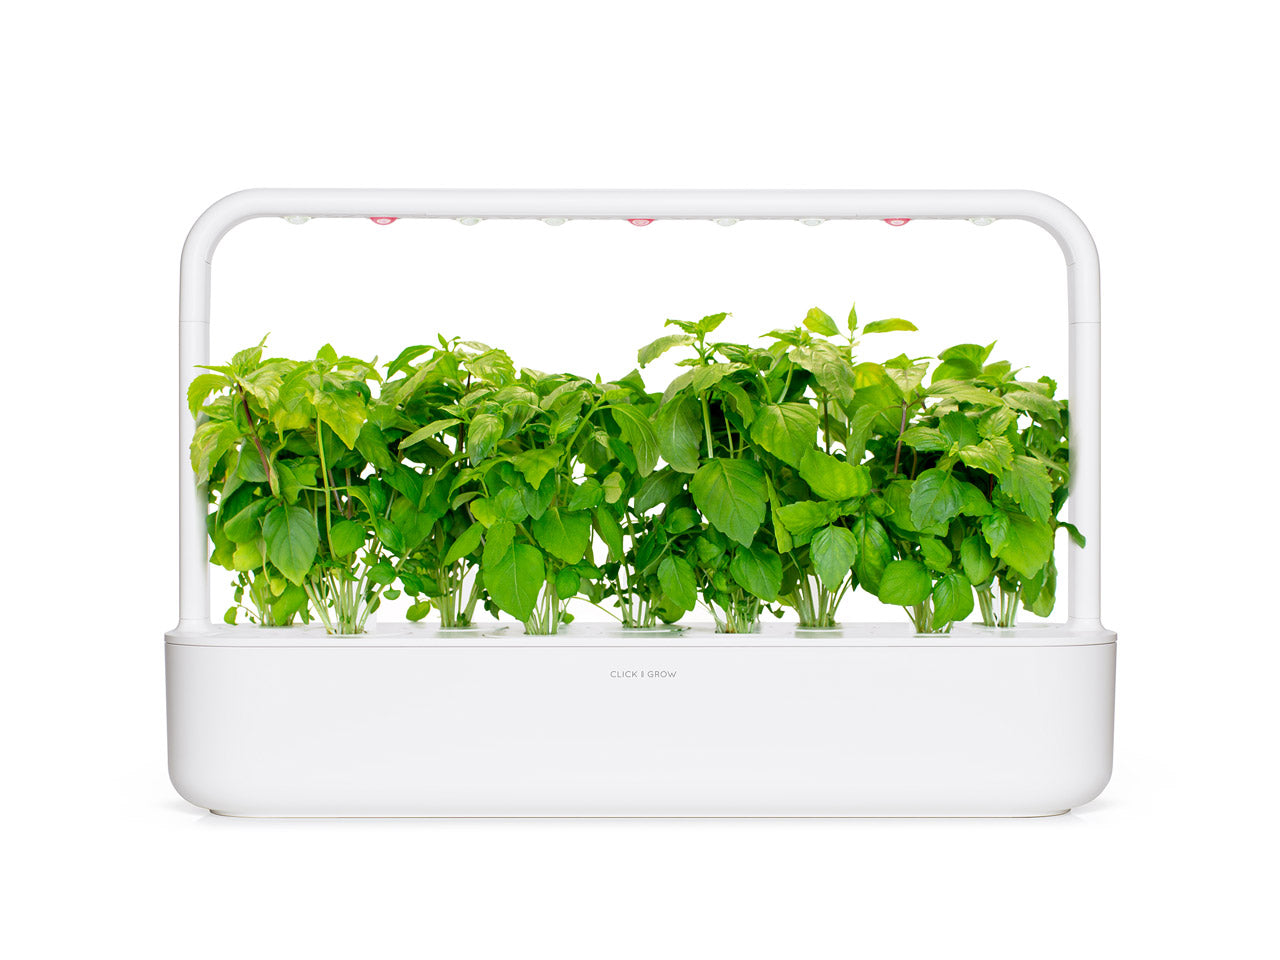 Cinnamon Basil - grow basil at home with a smart indoor herb garden